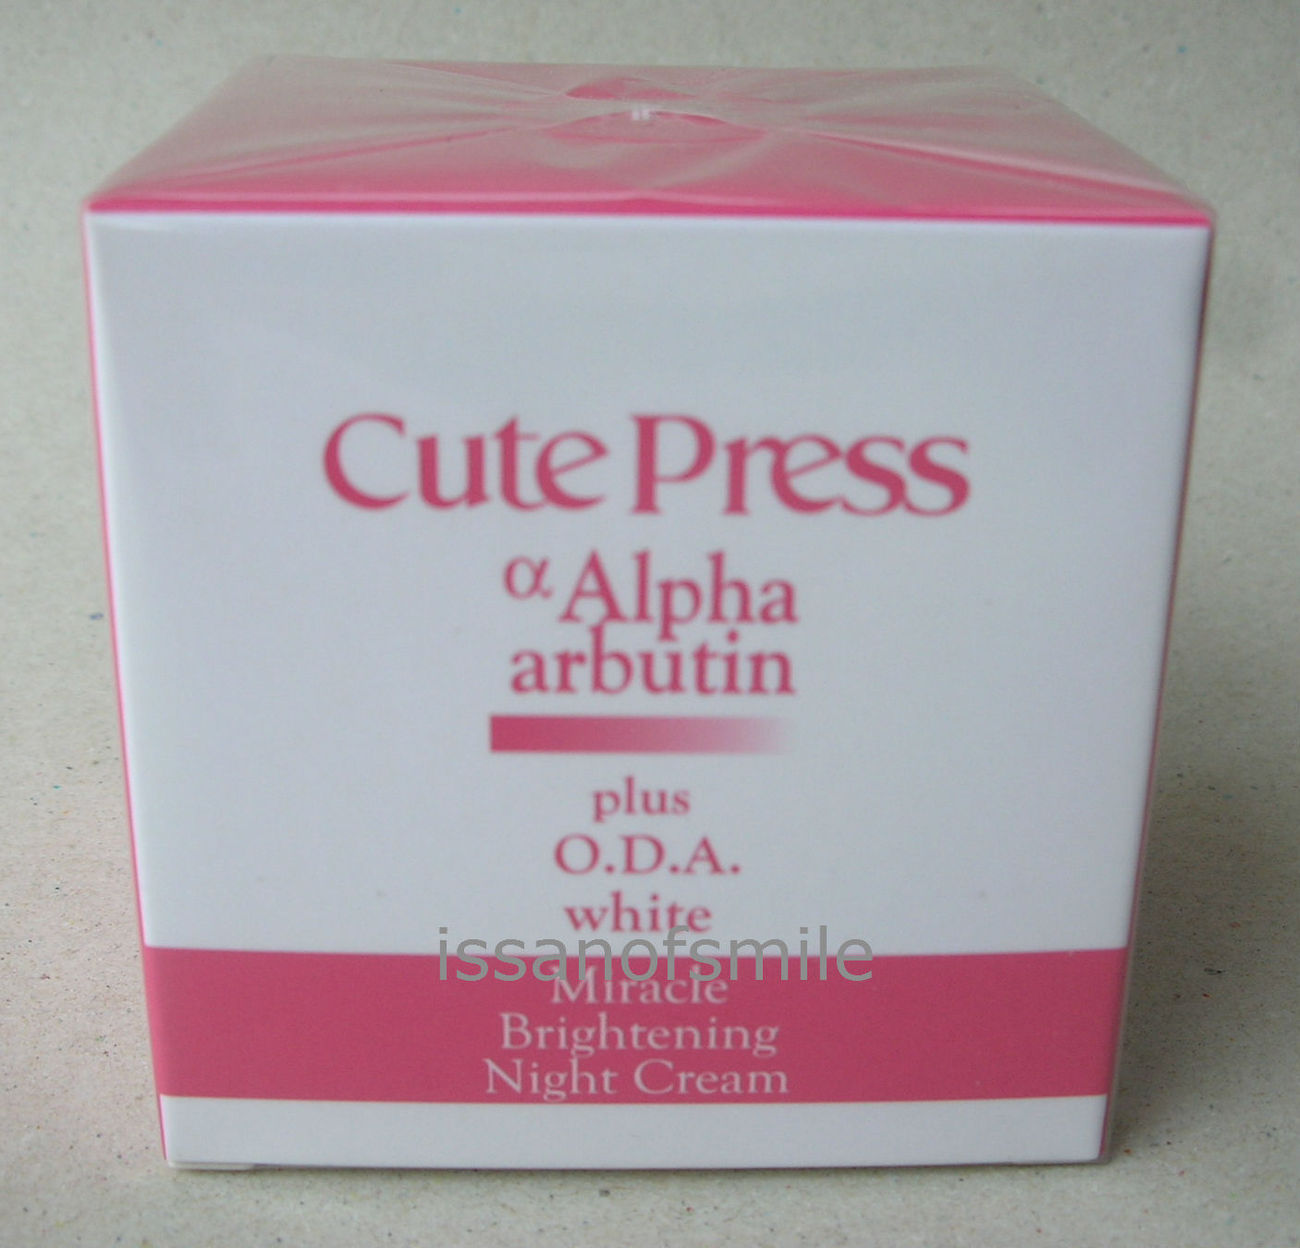 30g. Cute Press Alpha arbutin White Brightening Night Cream